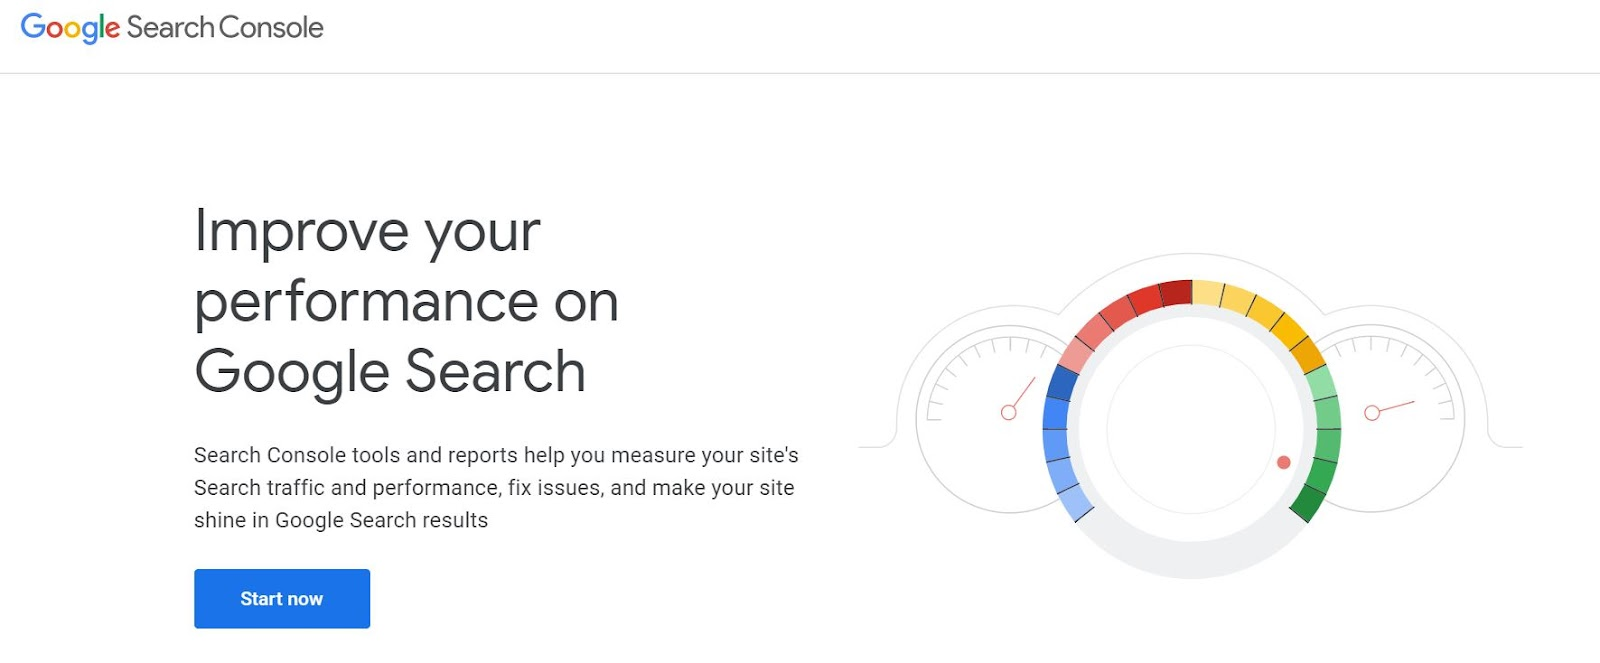 A screenshot of the Google Search Console home screen showing the start now button.